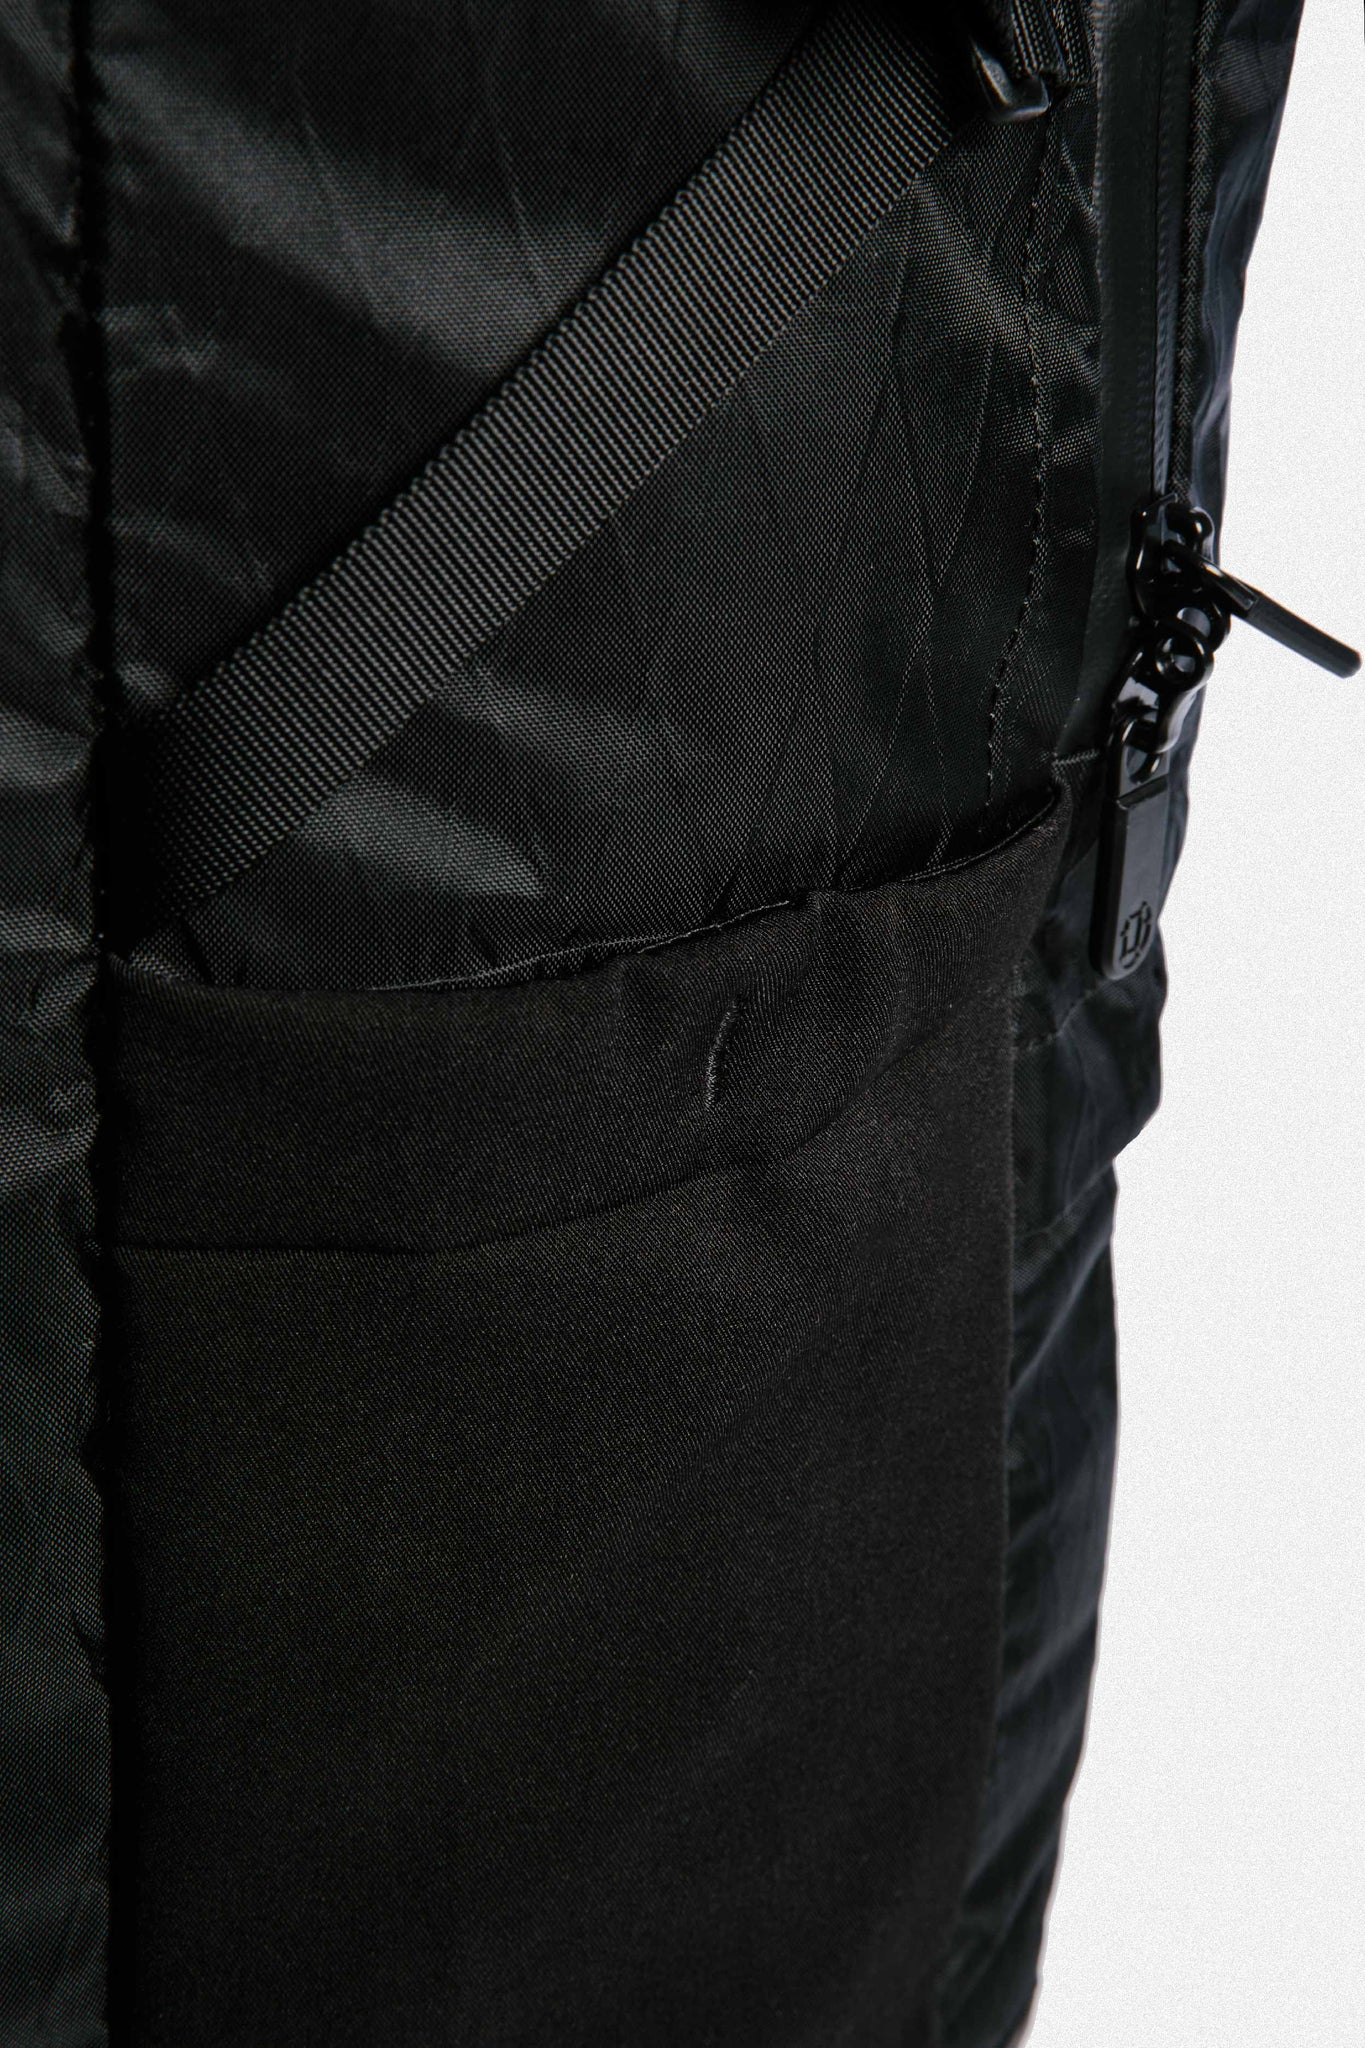 Locking zippers on a theft-proof backpack